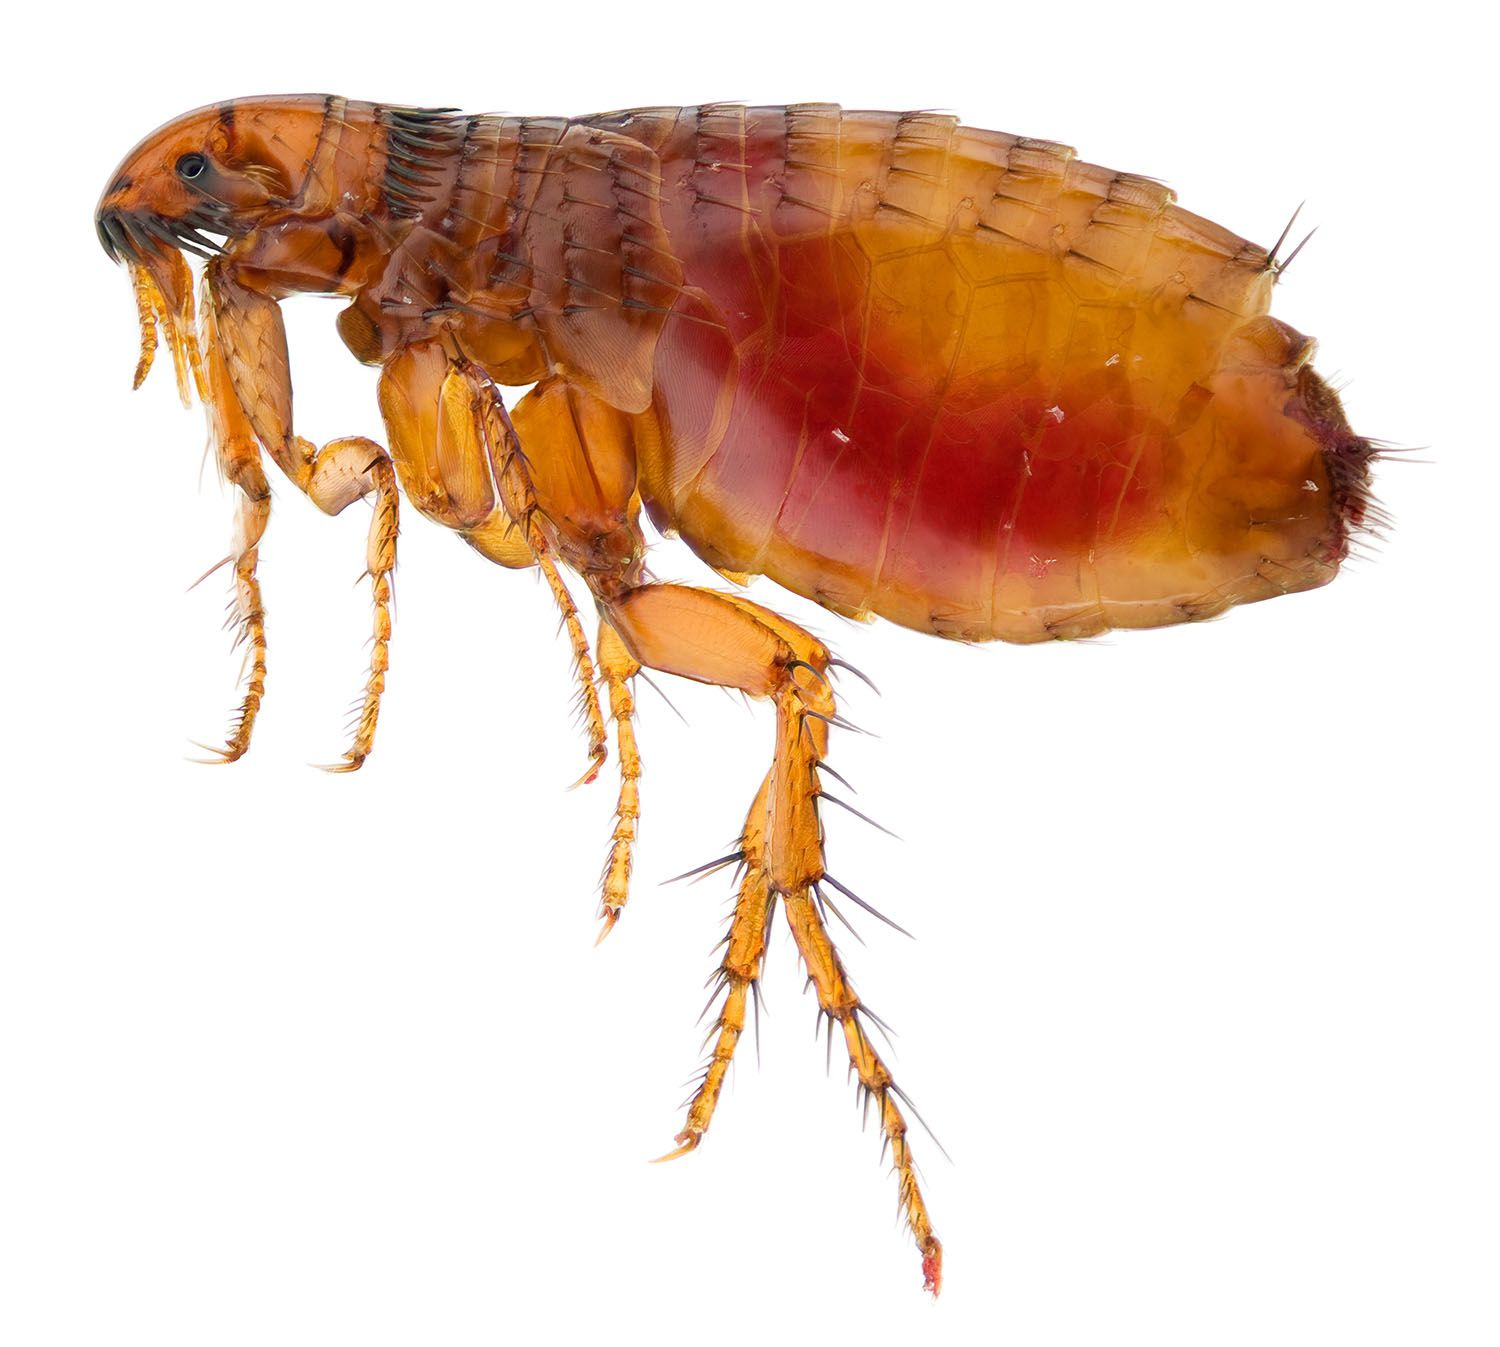 Can Fleas Live on Humans? Can I Get Fleas From My Pet?